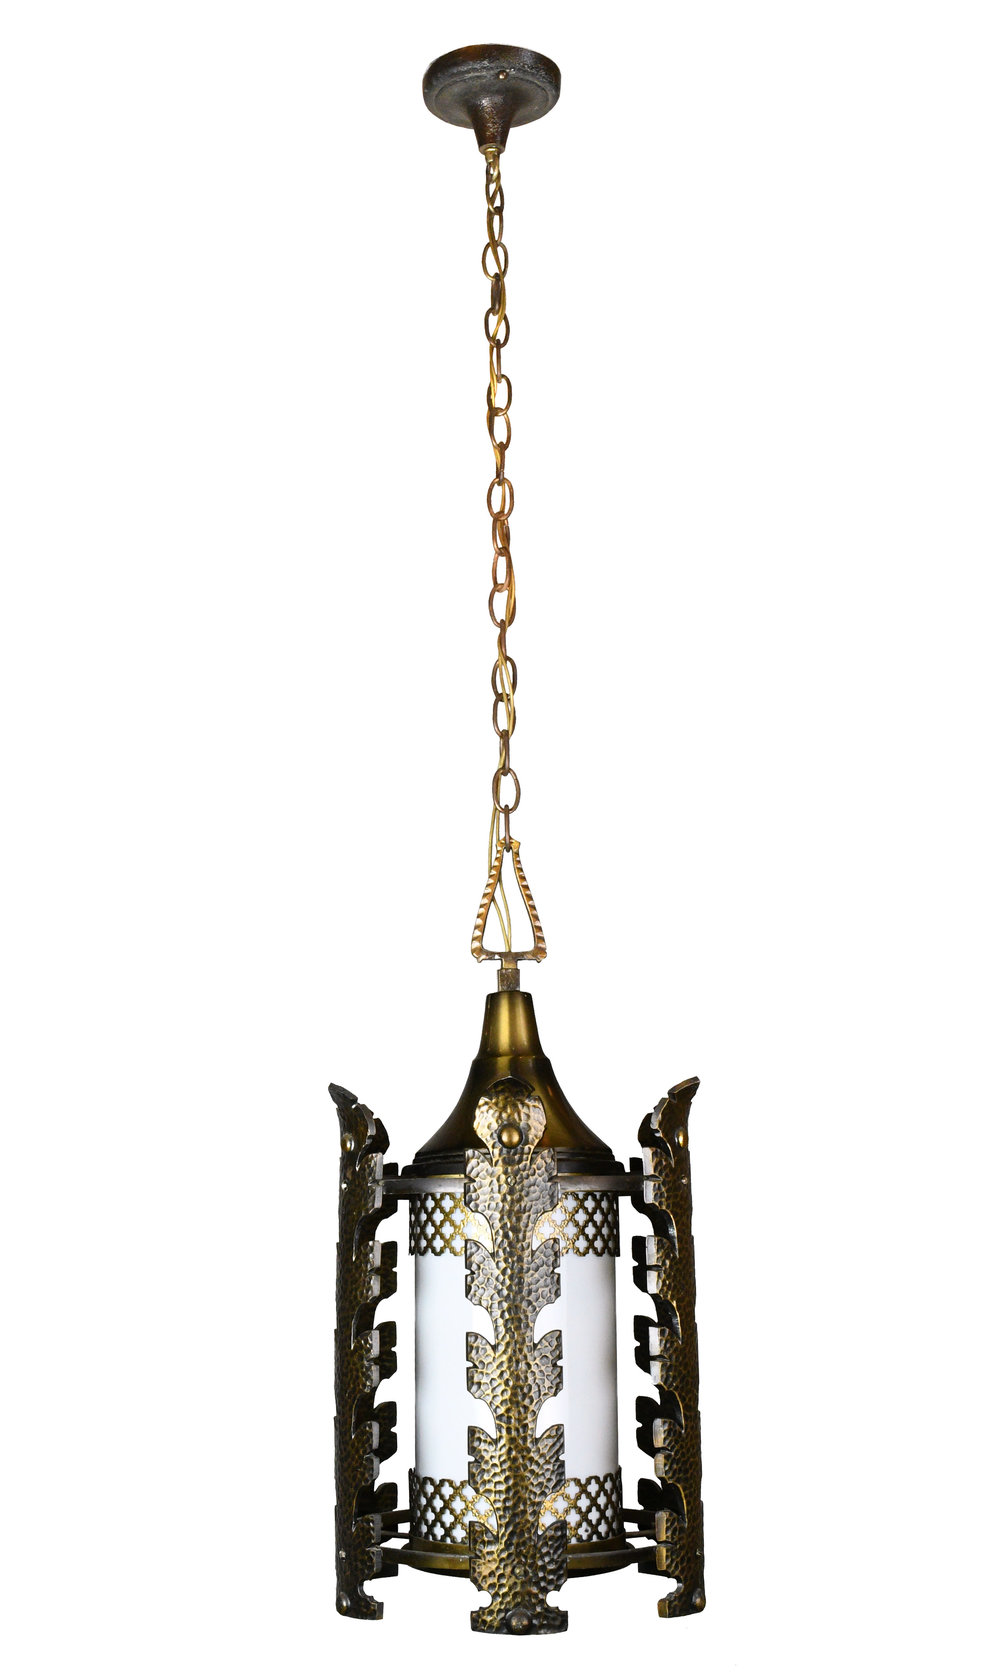 47634-midcentury-tube-pendant-full-view.jpg